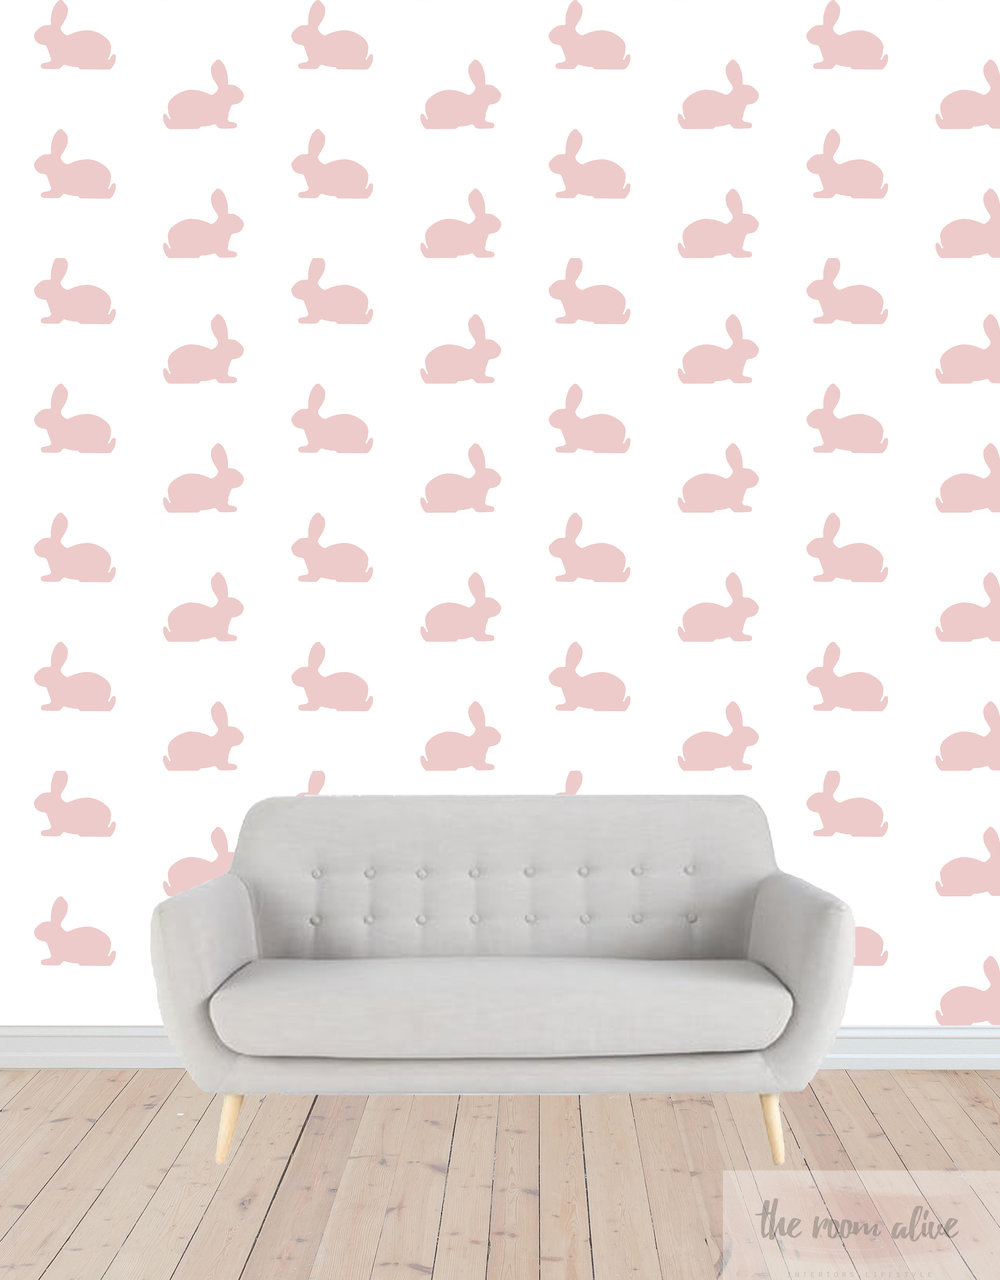 blush bunny on wall with sofa.jpg